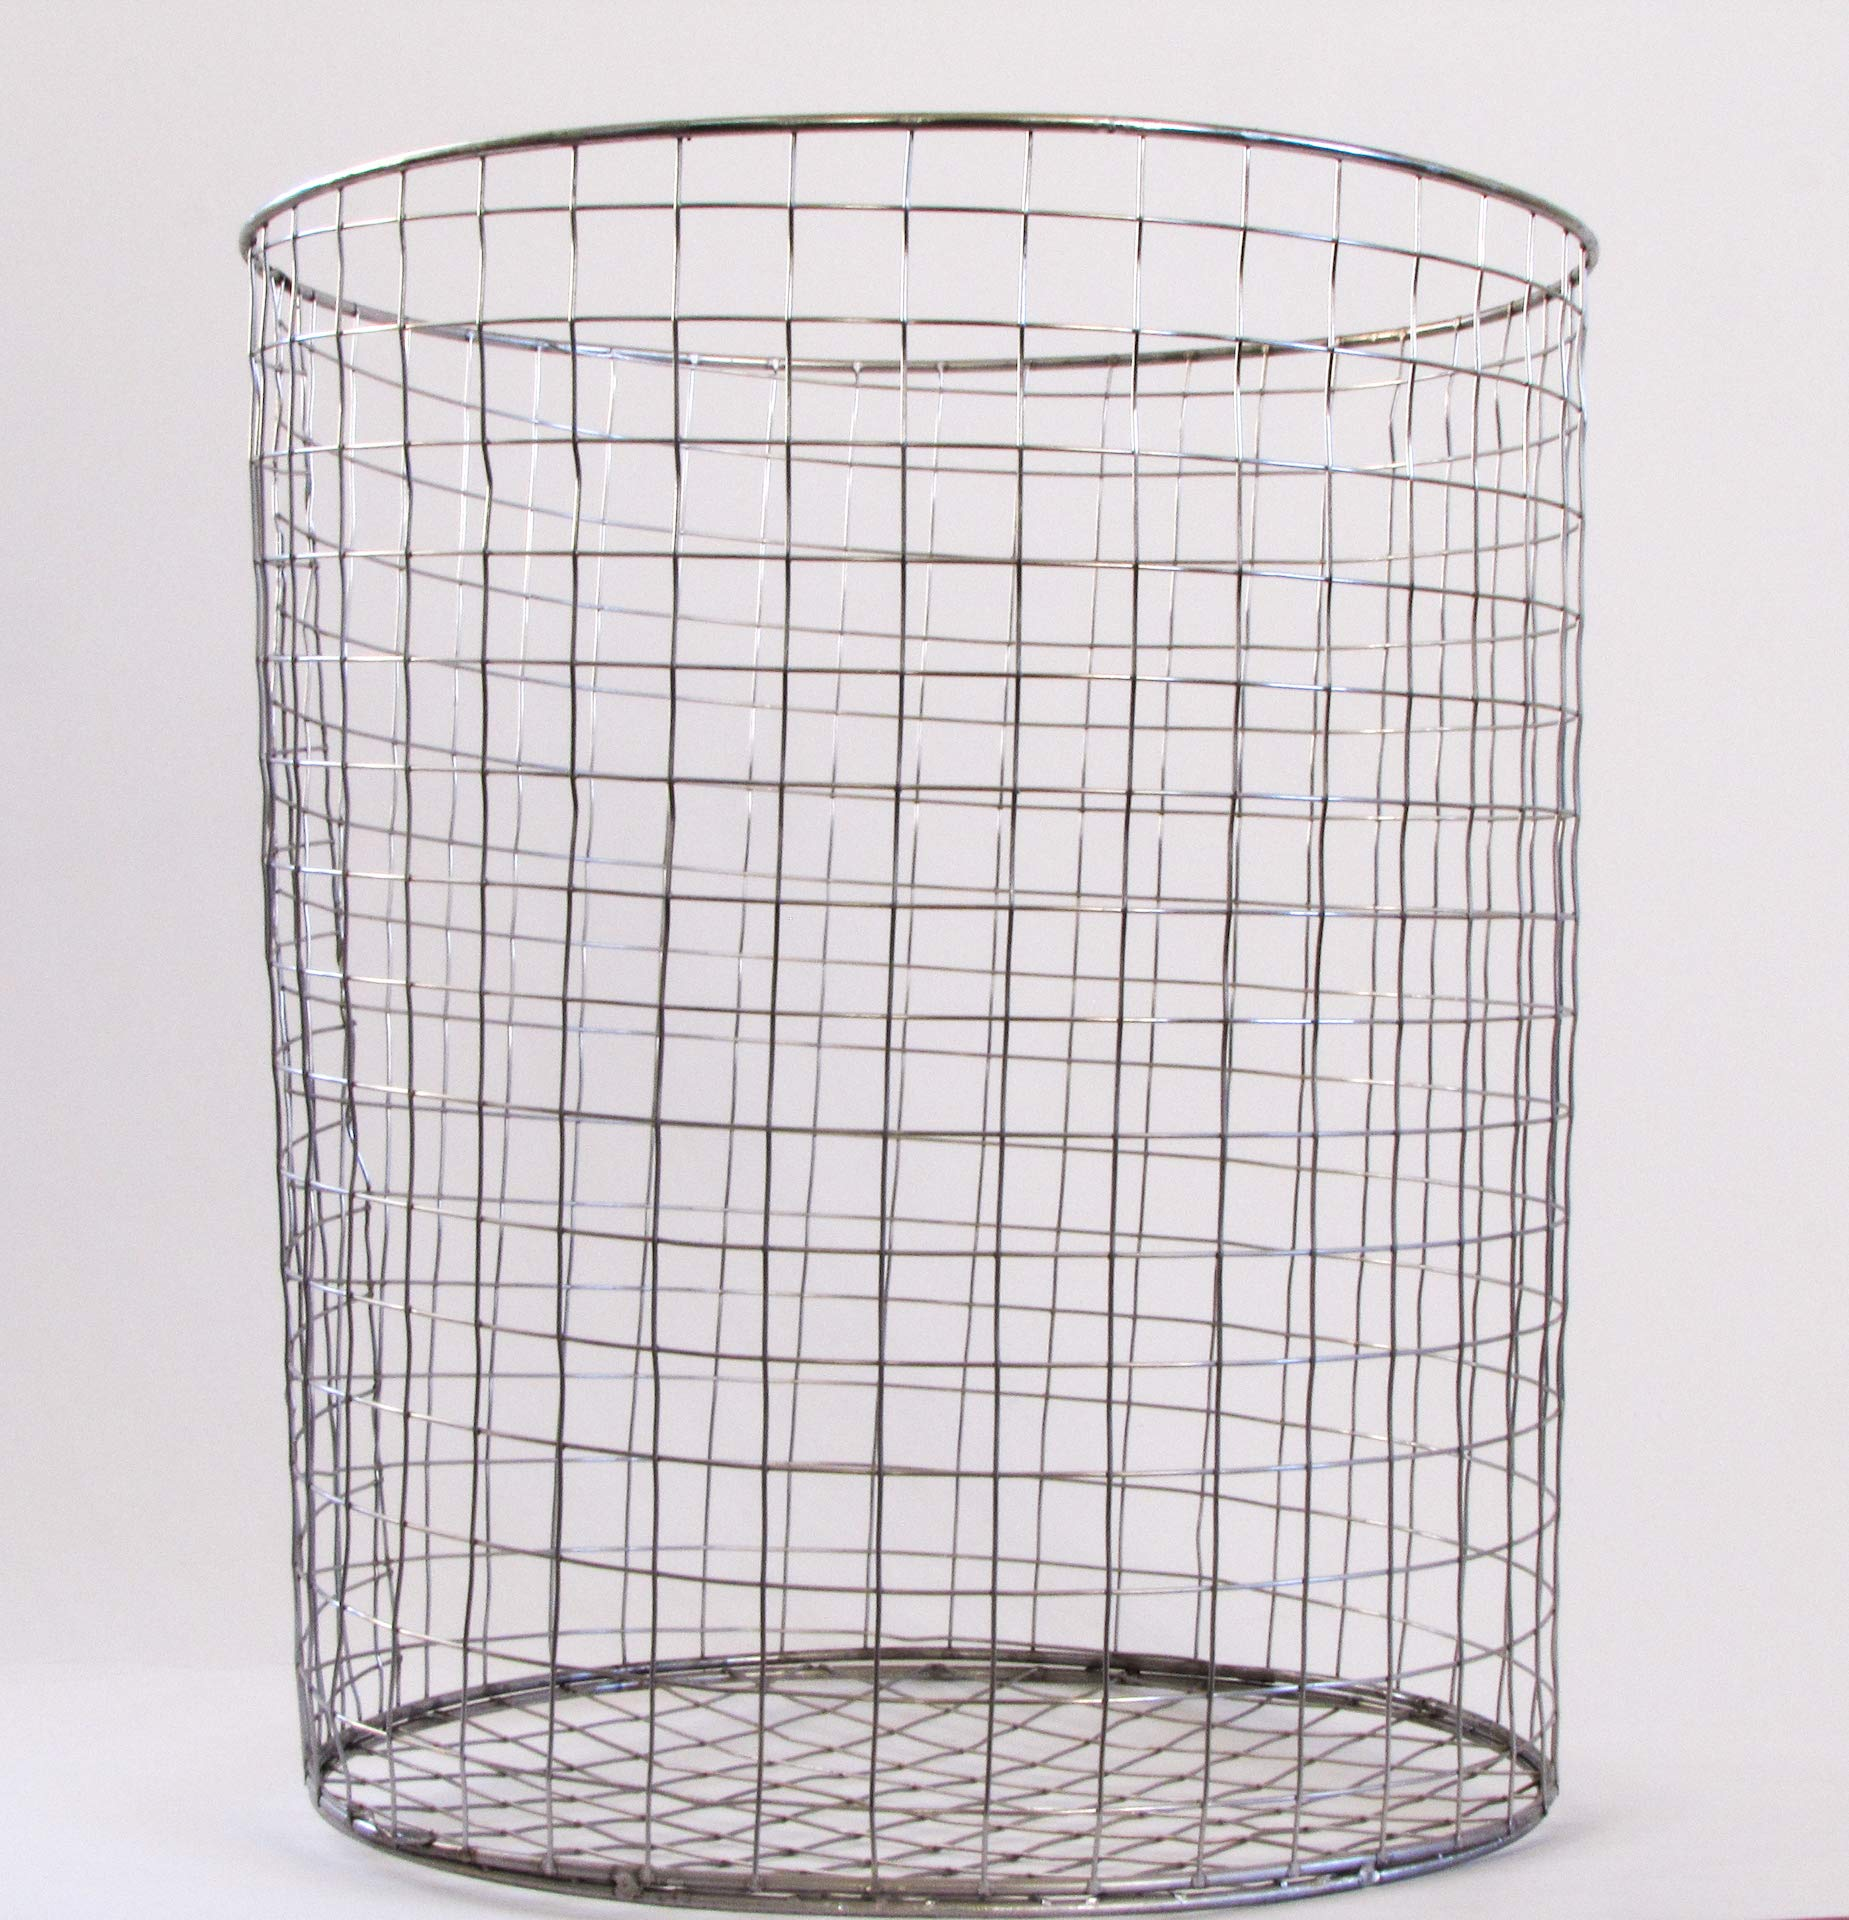 Gophers Limited Stainless Steel Wire Gopher/Mole Barrier Basket, 5 Gallon Size, 1 Case Quantity 12 Baskets